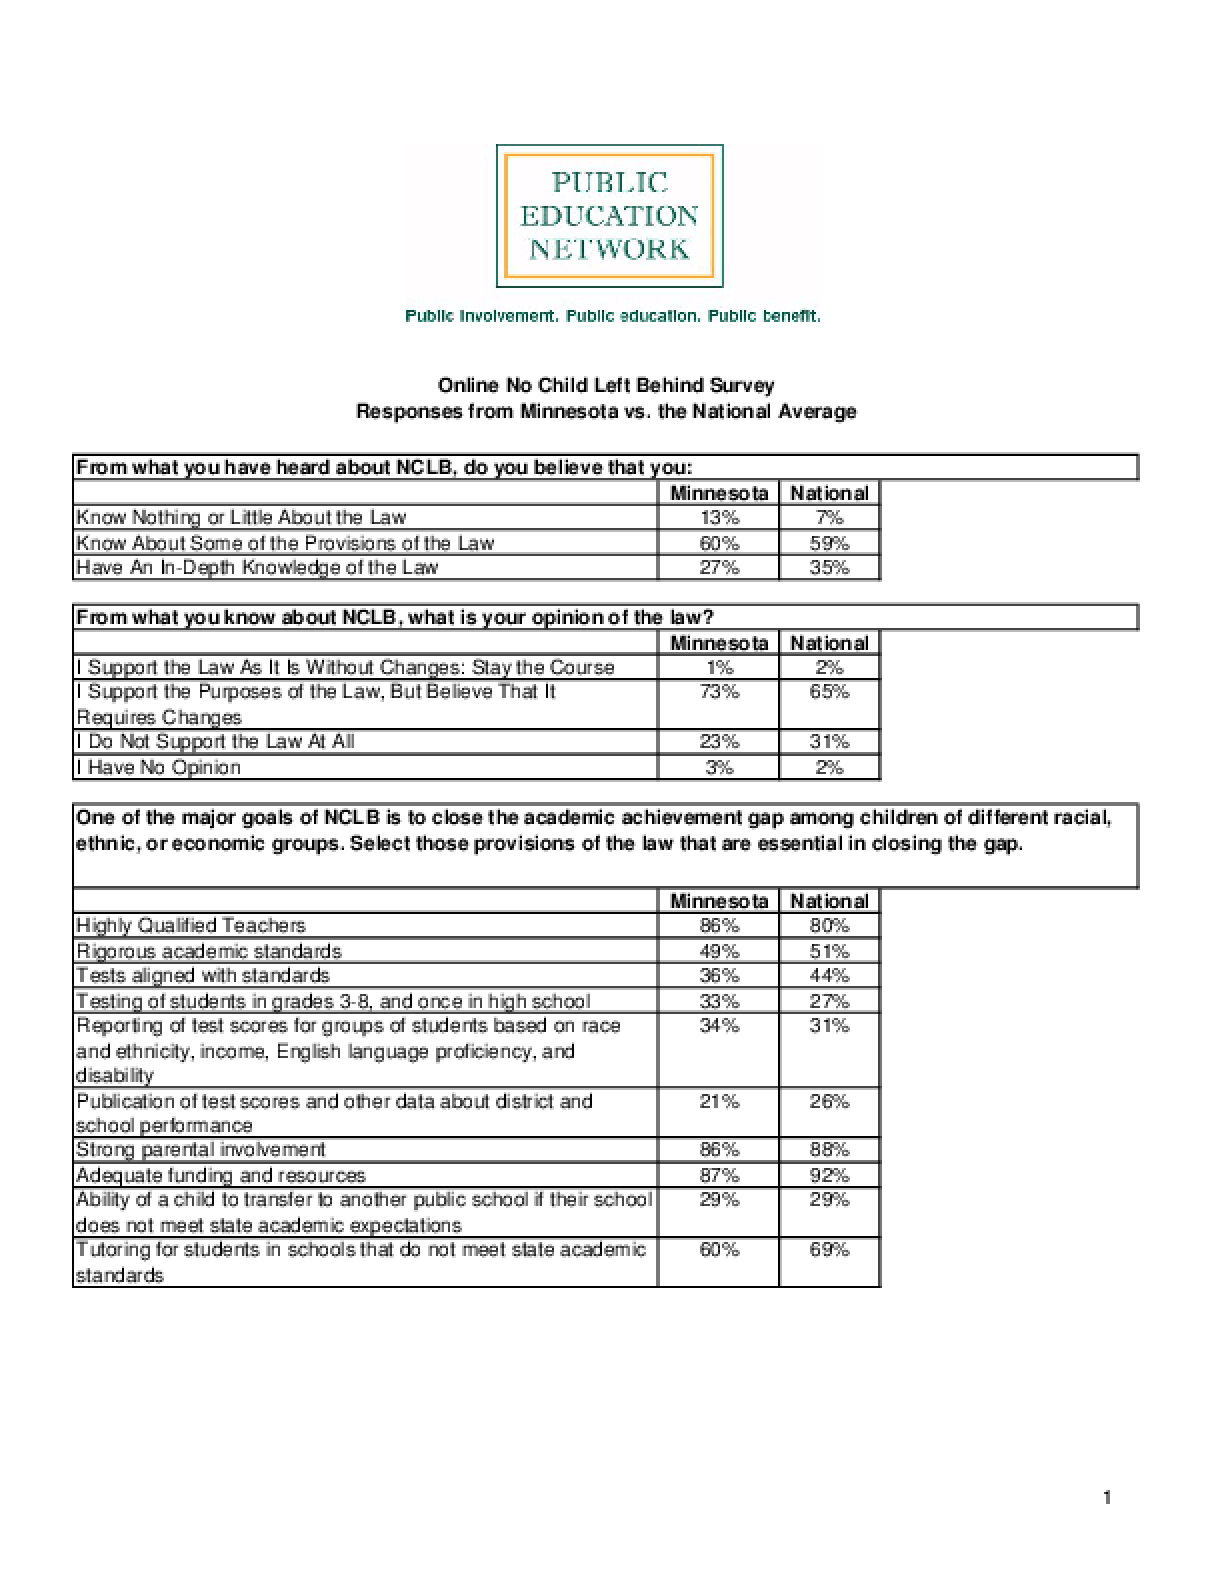 Online No Child Left Behind Survey Responses from Minnesota vs. the National Average